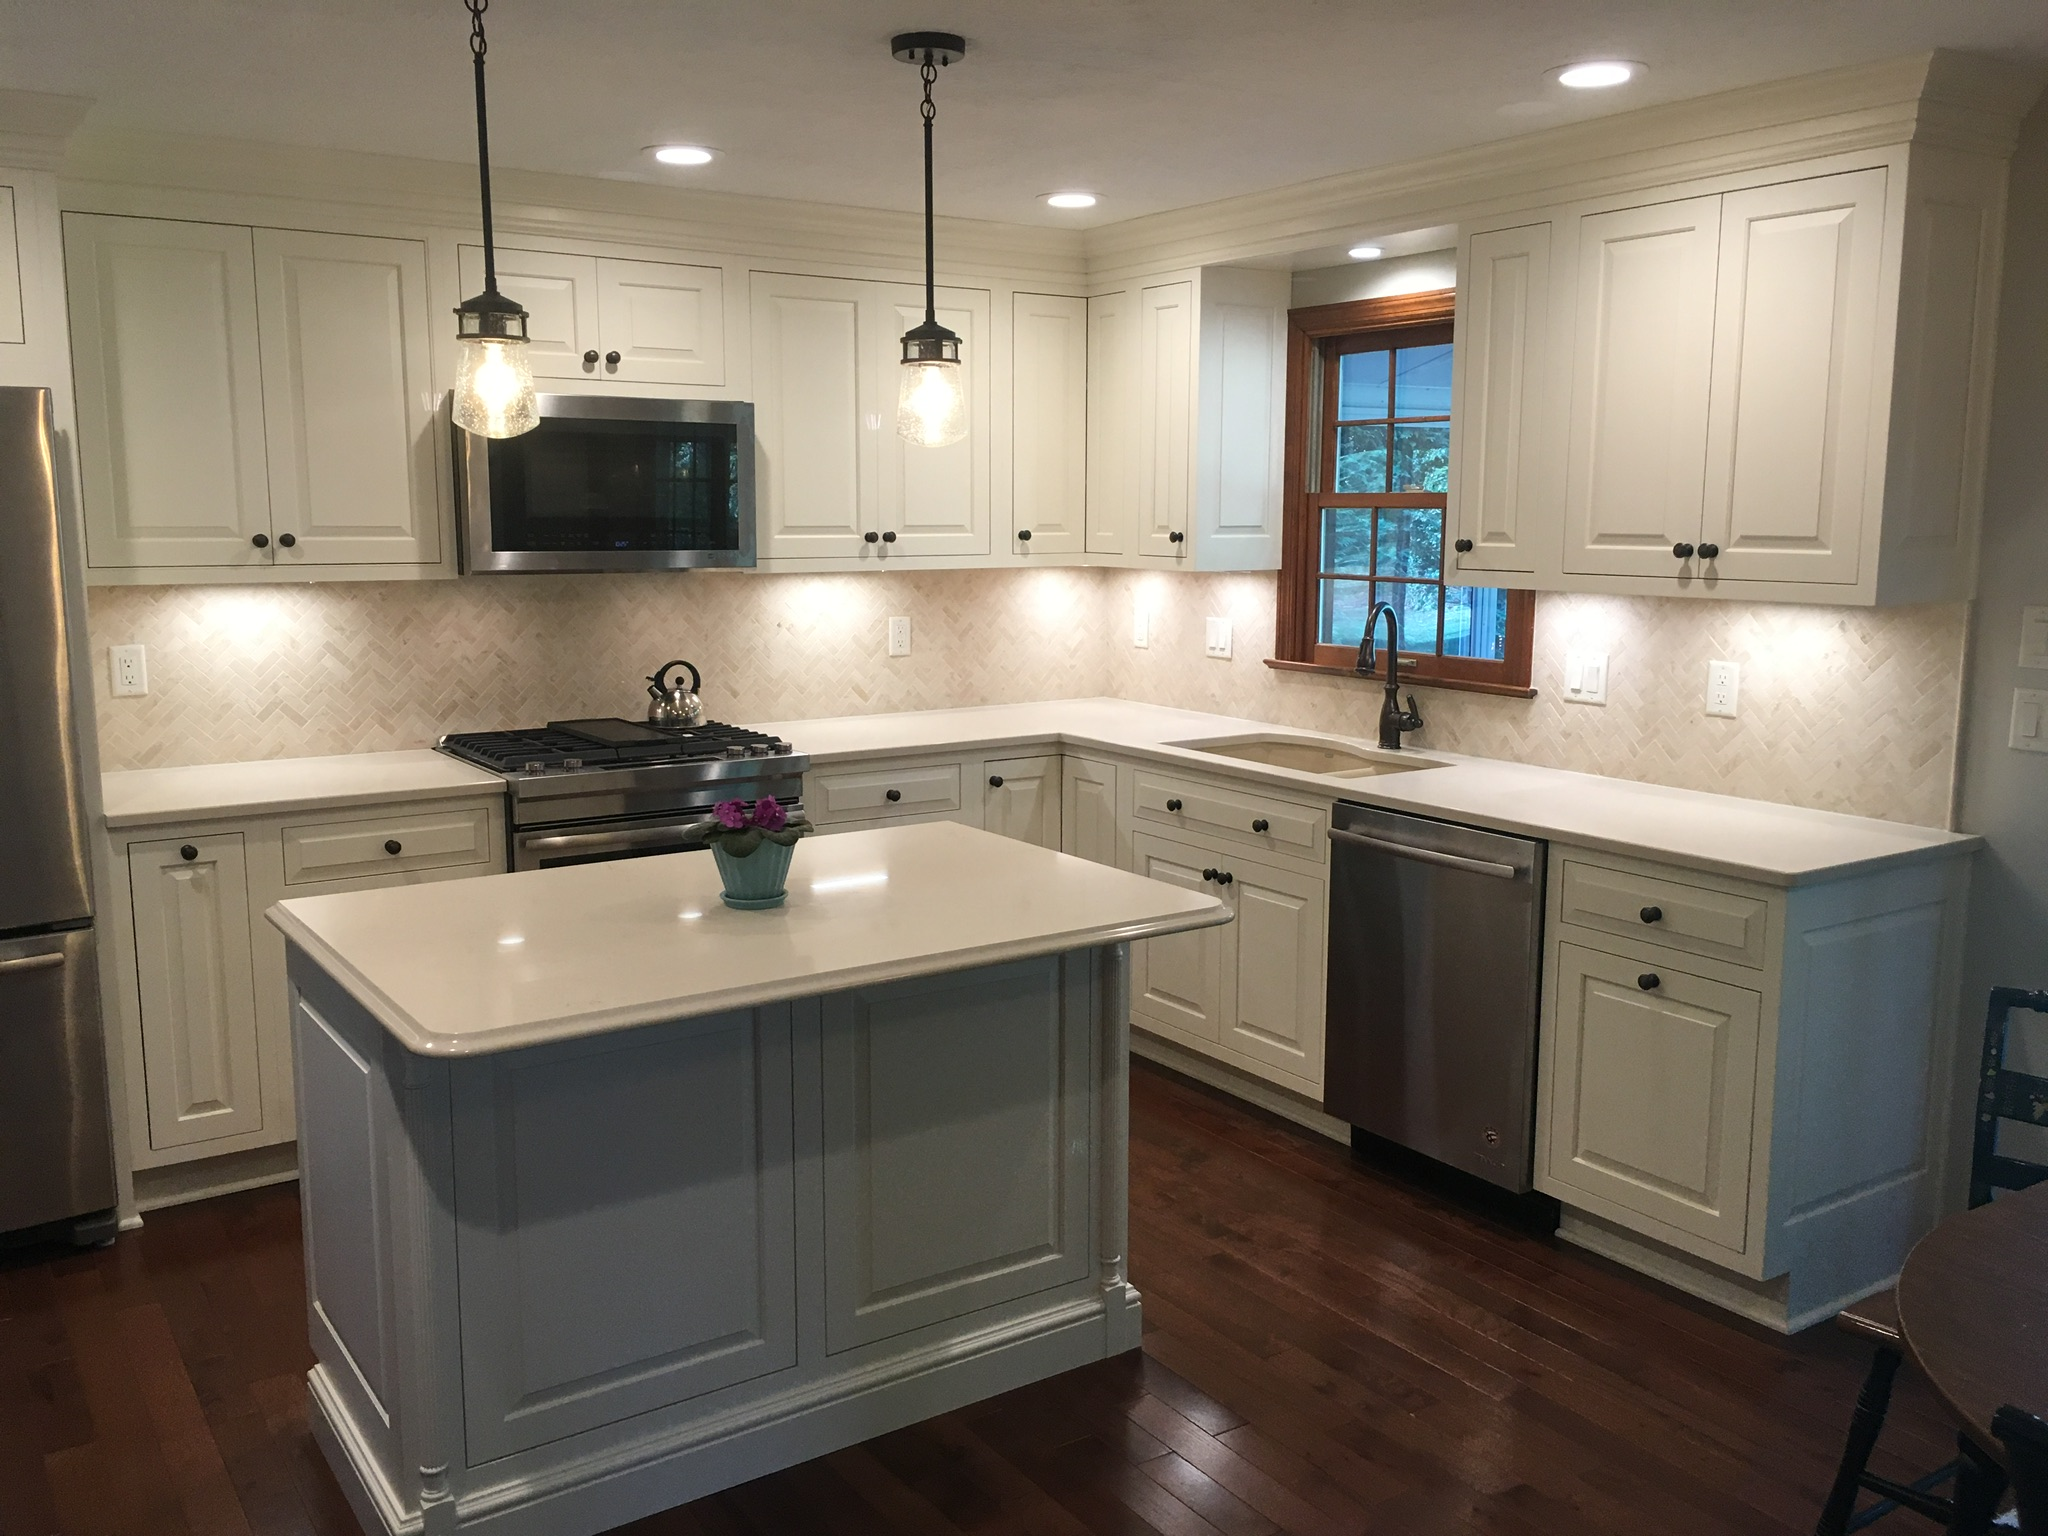 Modern kitchen with white stone countertop and white wooden cabinetry